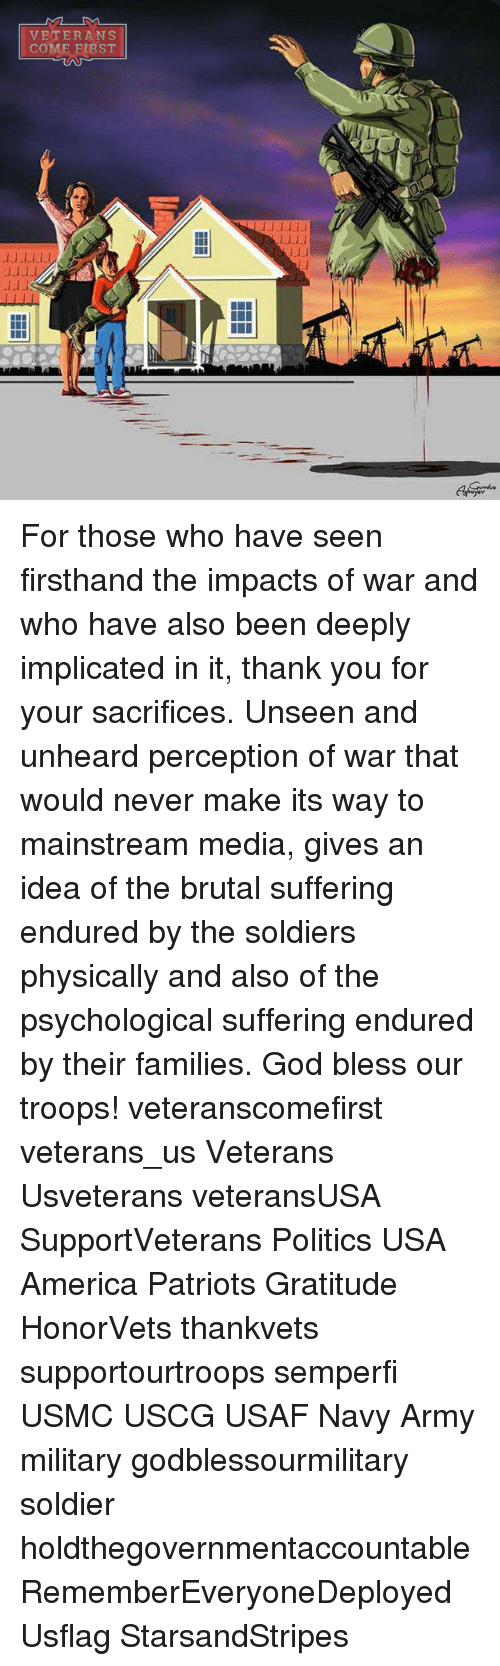 Blessed, Memes, and Patriotic: ML-DA  VETERANS  COME FIRST  l-1.1lJJ  LLLI  l_1.1  JJ-LLL!  -1.1 For those who have seen firsthand the impacts of war and who have also been deeply implicated in it, thank you for your sacrifices. Unseen and unheard perception of war that would never make its way to mainstream media, gives an idea of the brutal suffering endured by the soldiers physically and also of the psychological suffering endured by their families. God bless our troops! veteranscomefirst veterans_us Veterans Usveterans veteransUSA SupportVeterans Politics USA America Patriots Gratitude HonorVets thankvets supportourtroops semperfi USMC USCG USAF Navy Army military godblessourmilitary soldier holdthegovernmentaccountable RememberEveryoneDeployed Usflag StarsandStripes